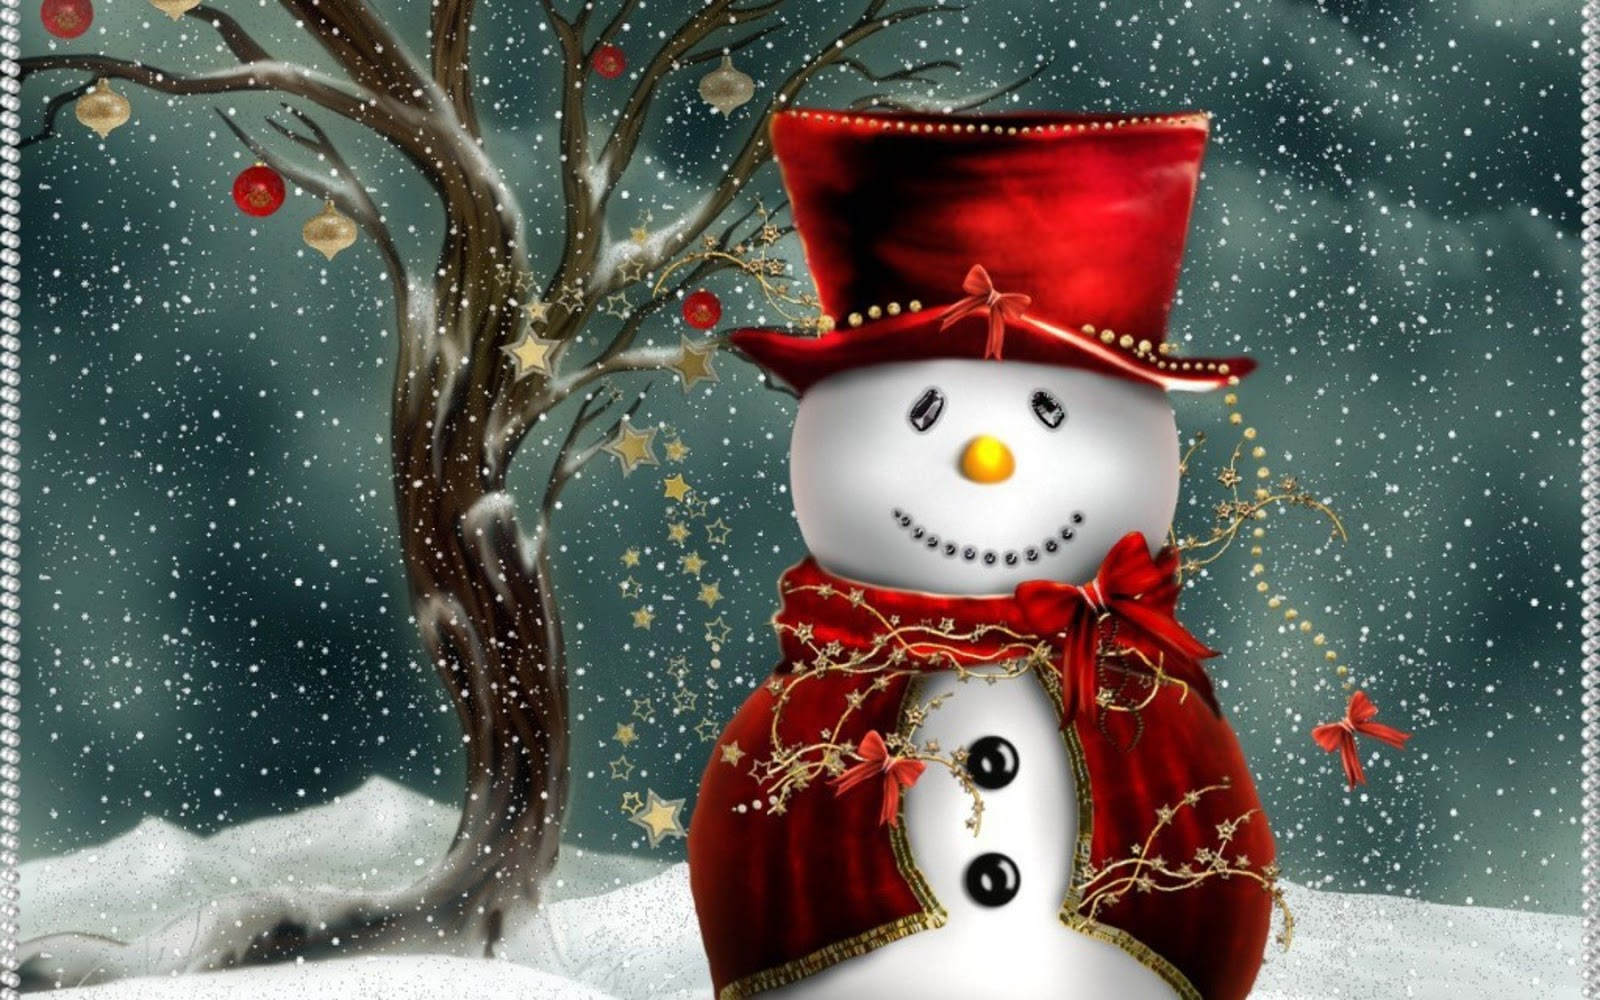 happy christmas facebook covers background wallpapers hd free download